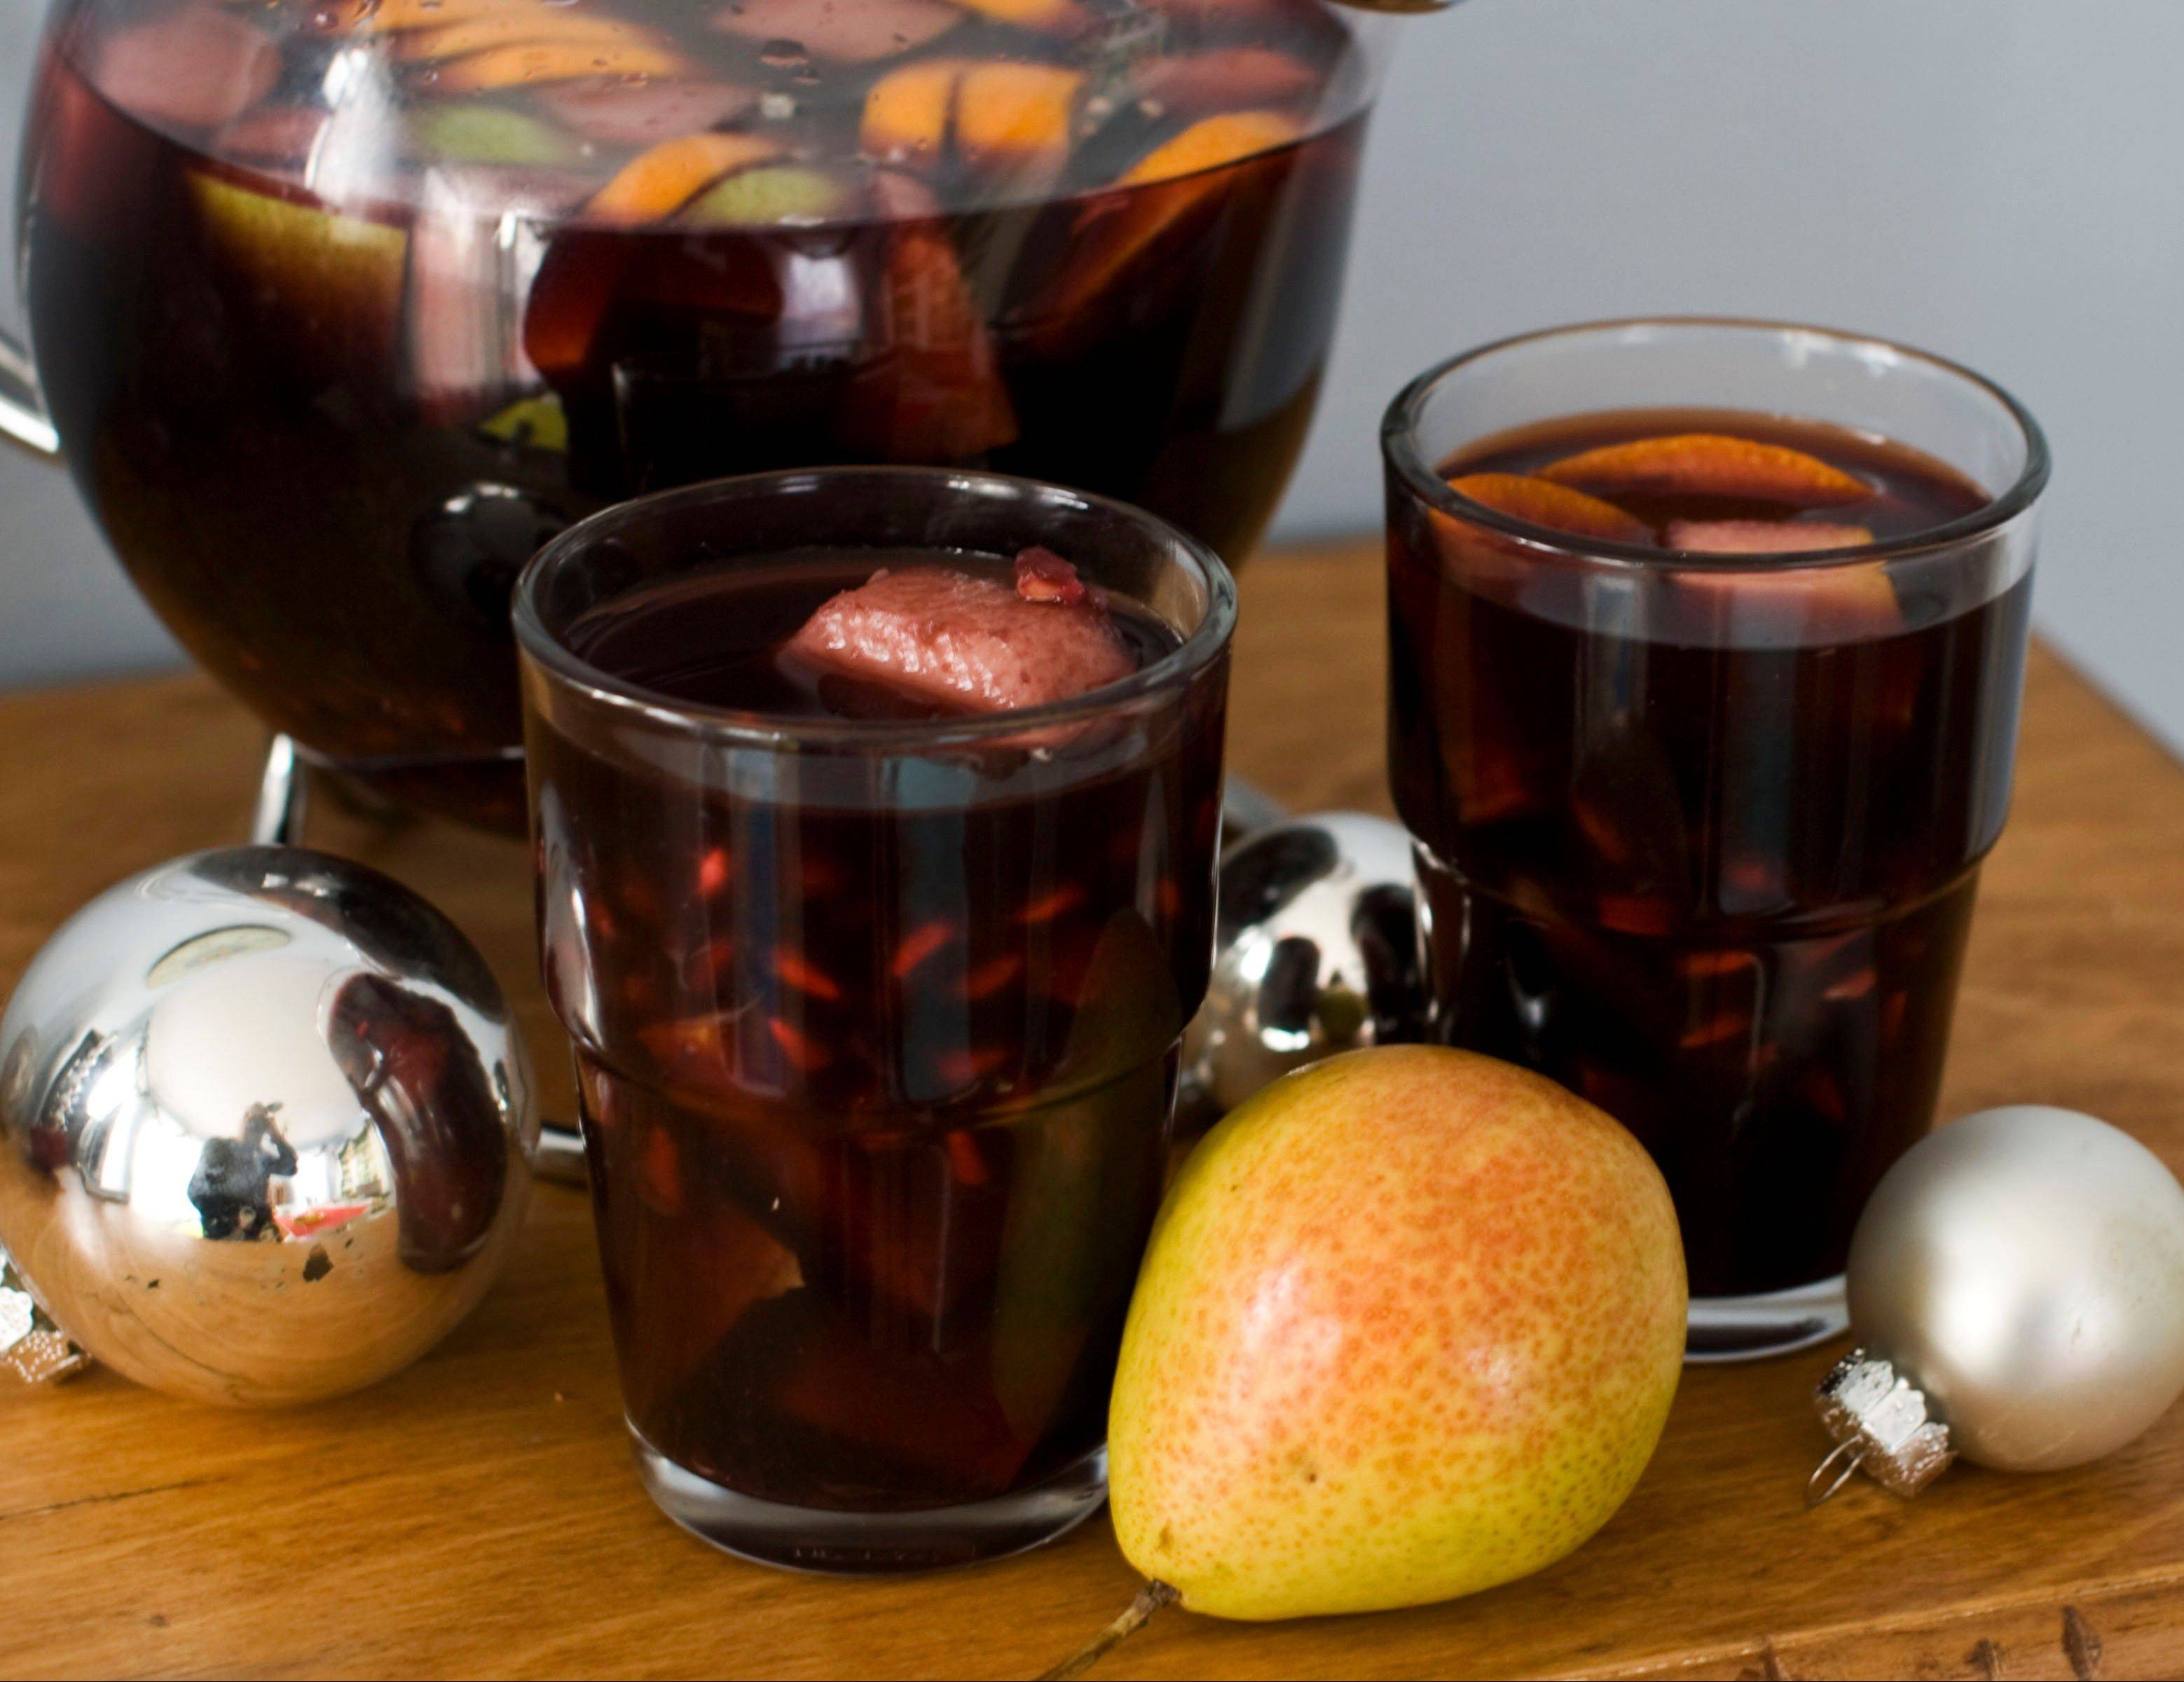 Greet guests with a glass of Christmas Sangria and they might not notice that the party food came from the drive-through.